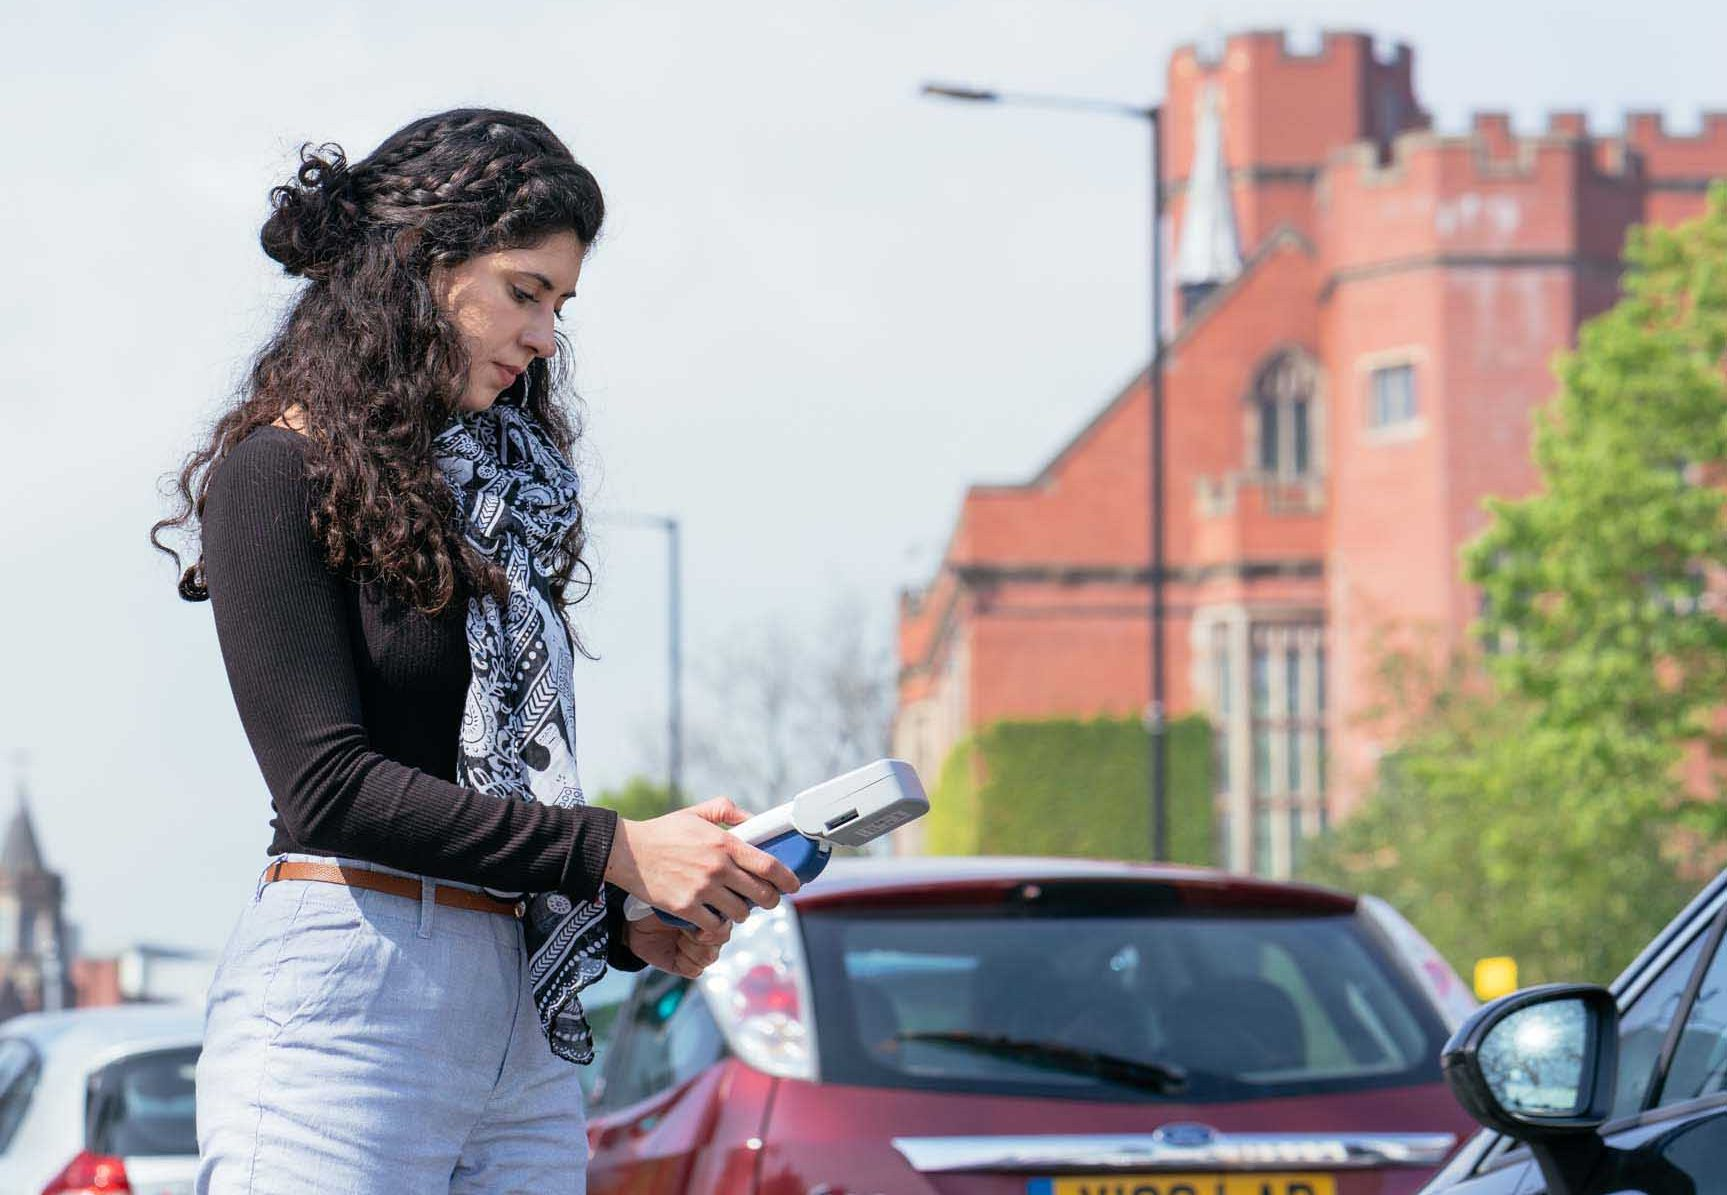 Maria monitoring air quality as part of her project into plants, air quality and health